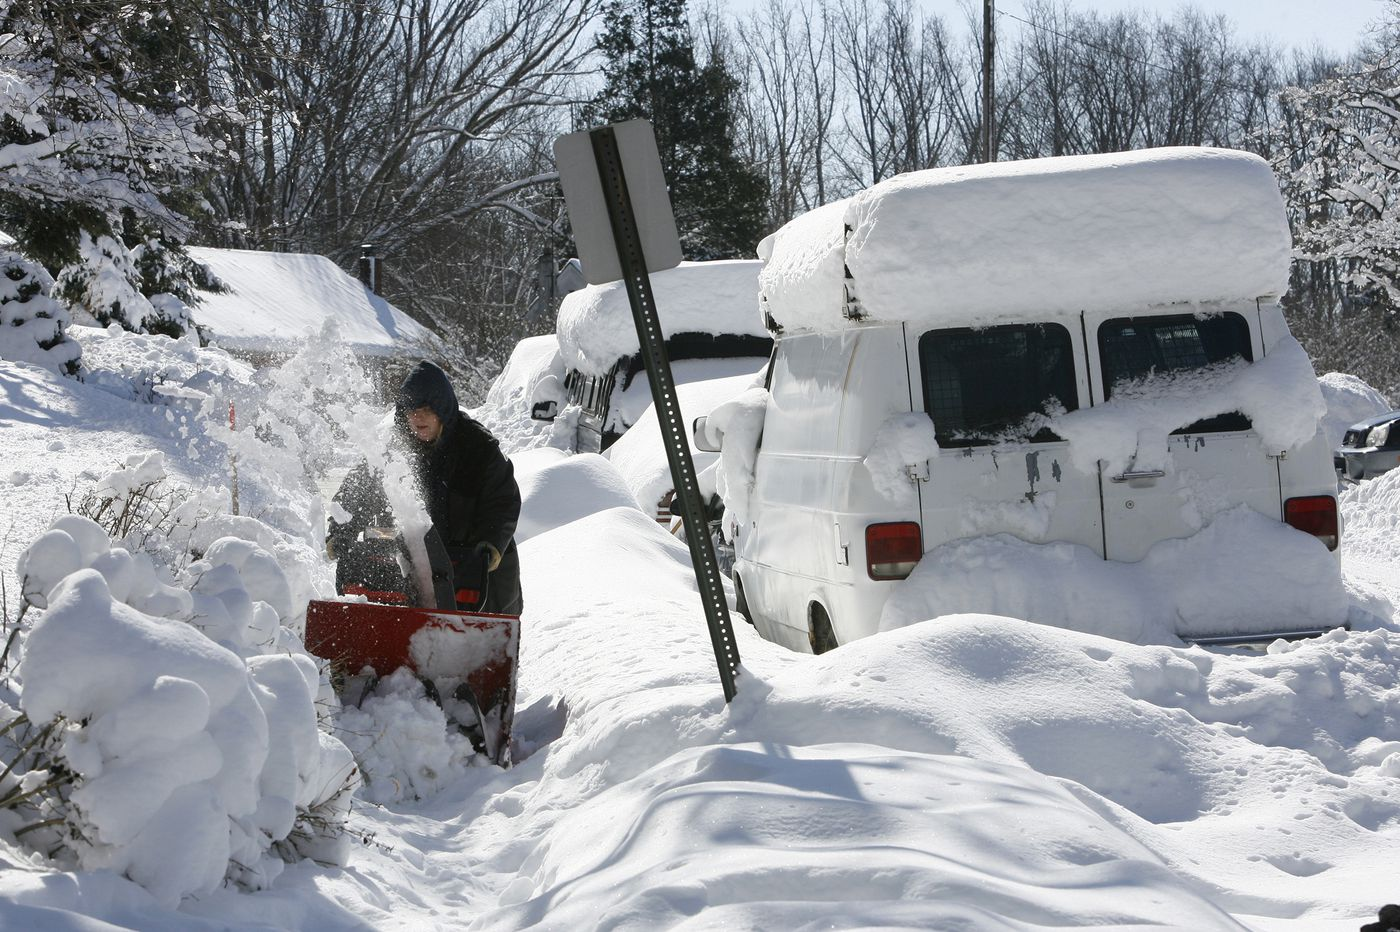 Ten years ago this week, Philly got 44 inches of snow in 5 days. Why this winter is so different.